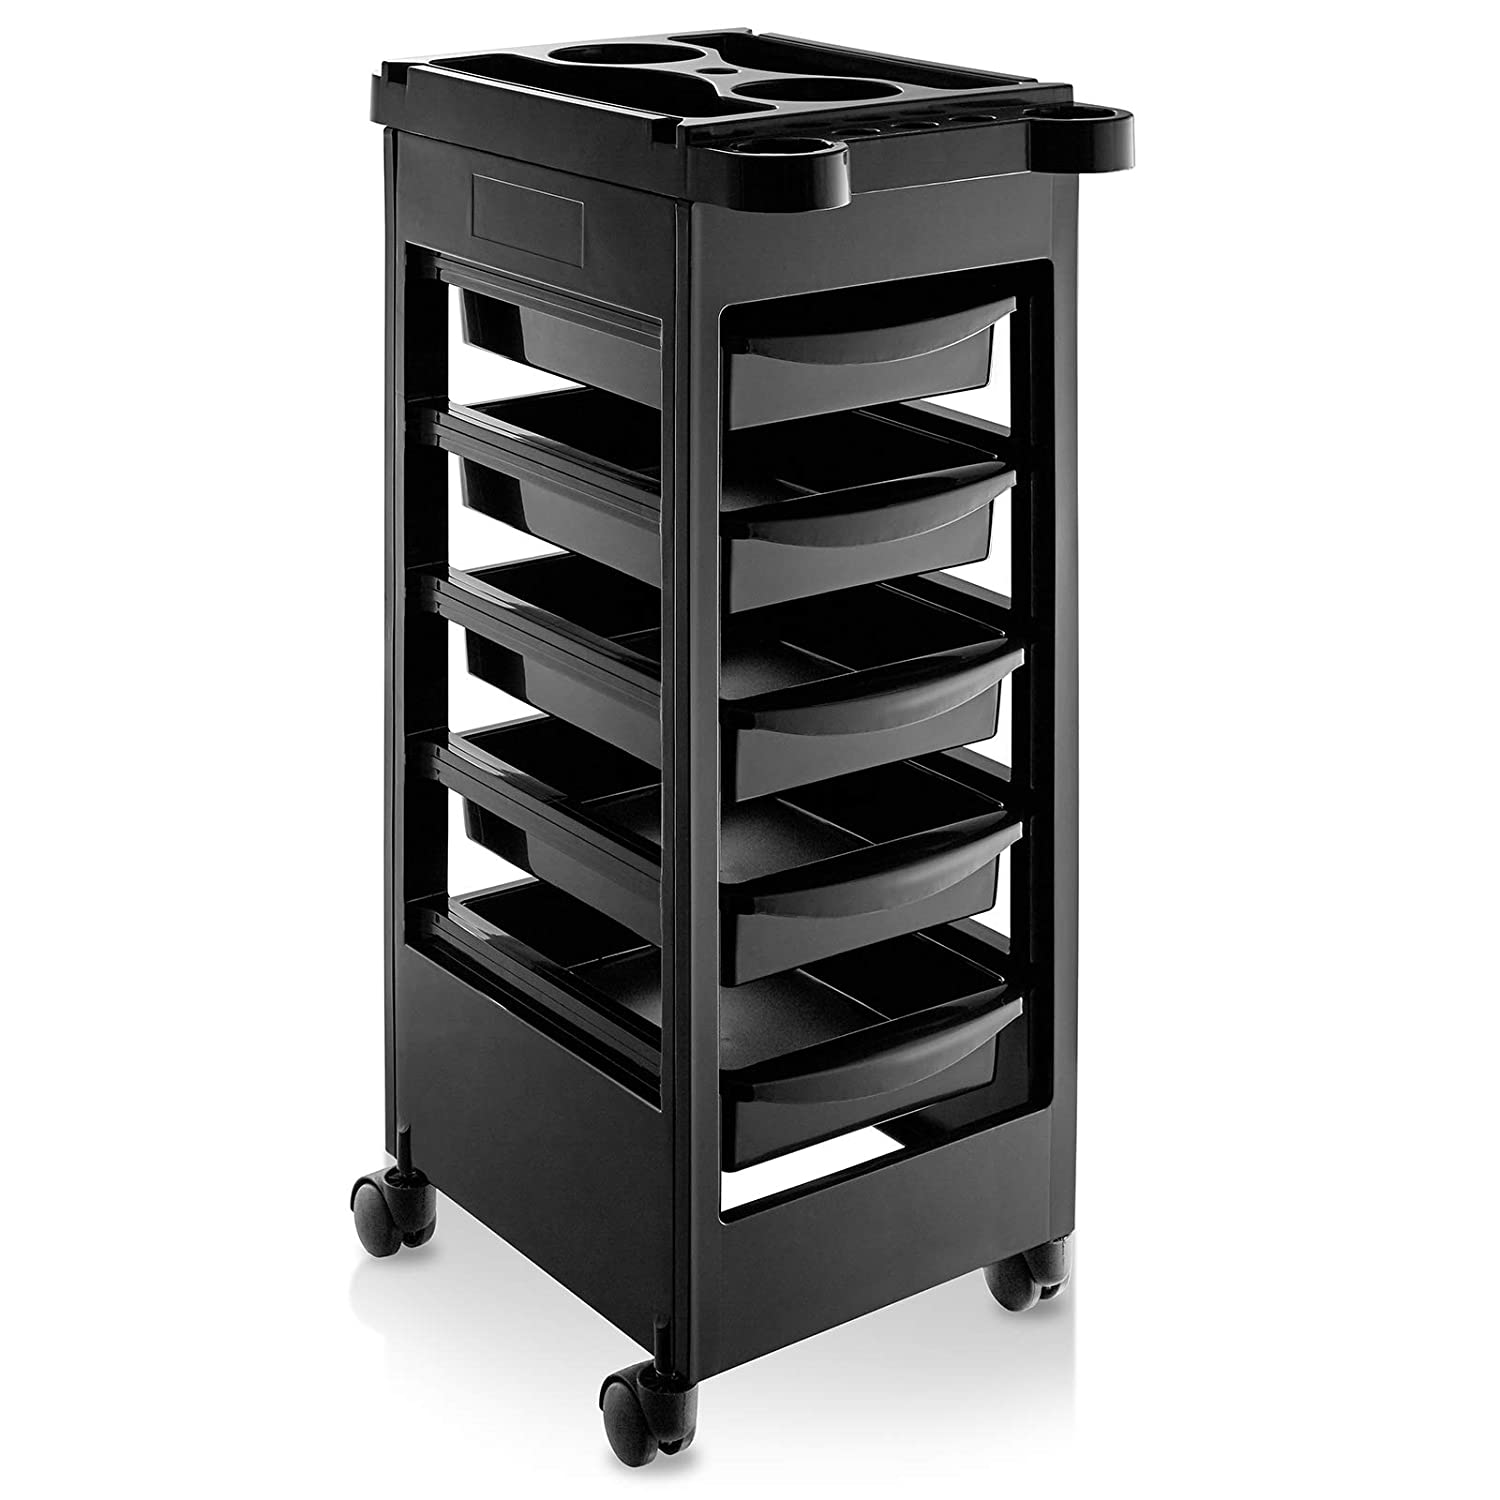 Saloniture Beauty Salon Rolling Trolley Cart With 5 Drawers: Beauty